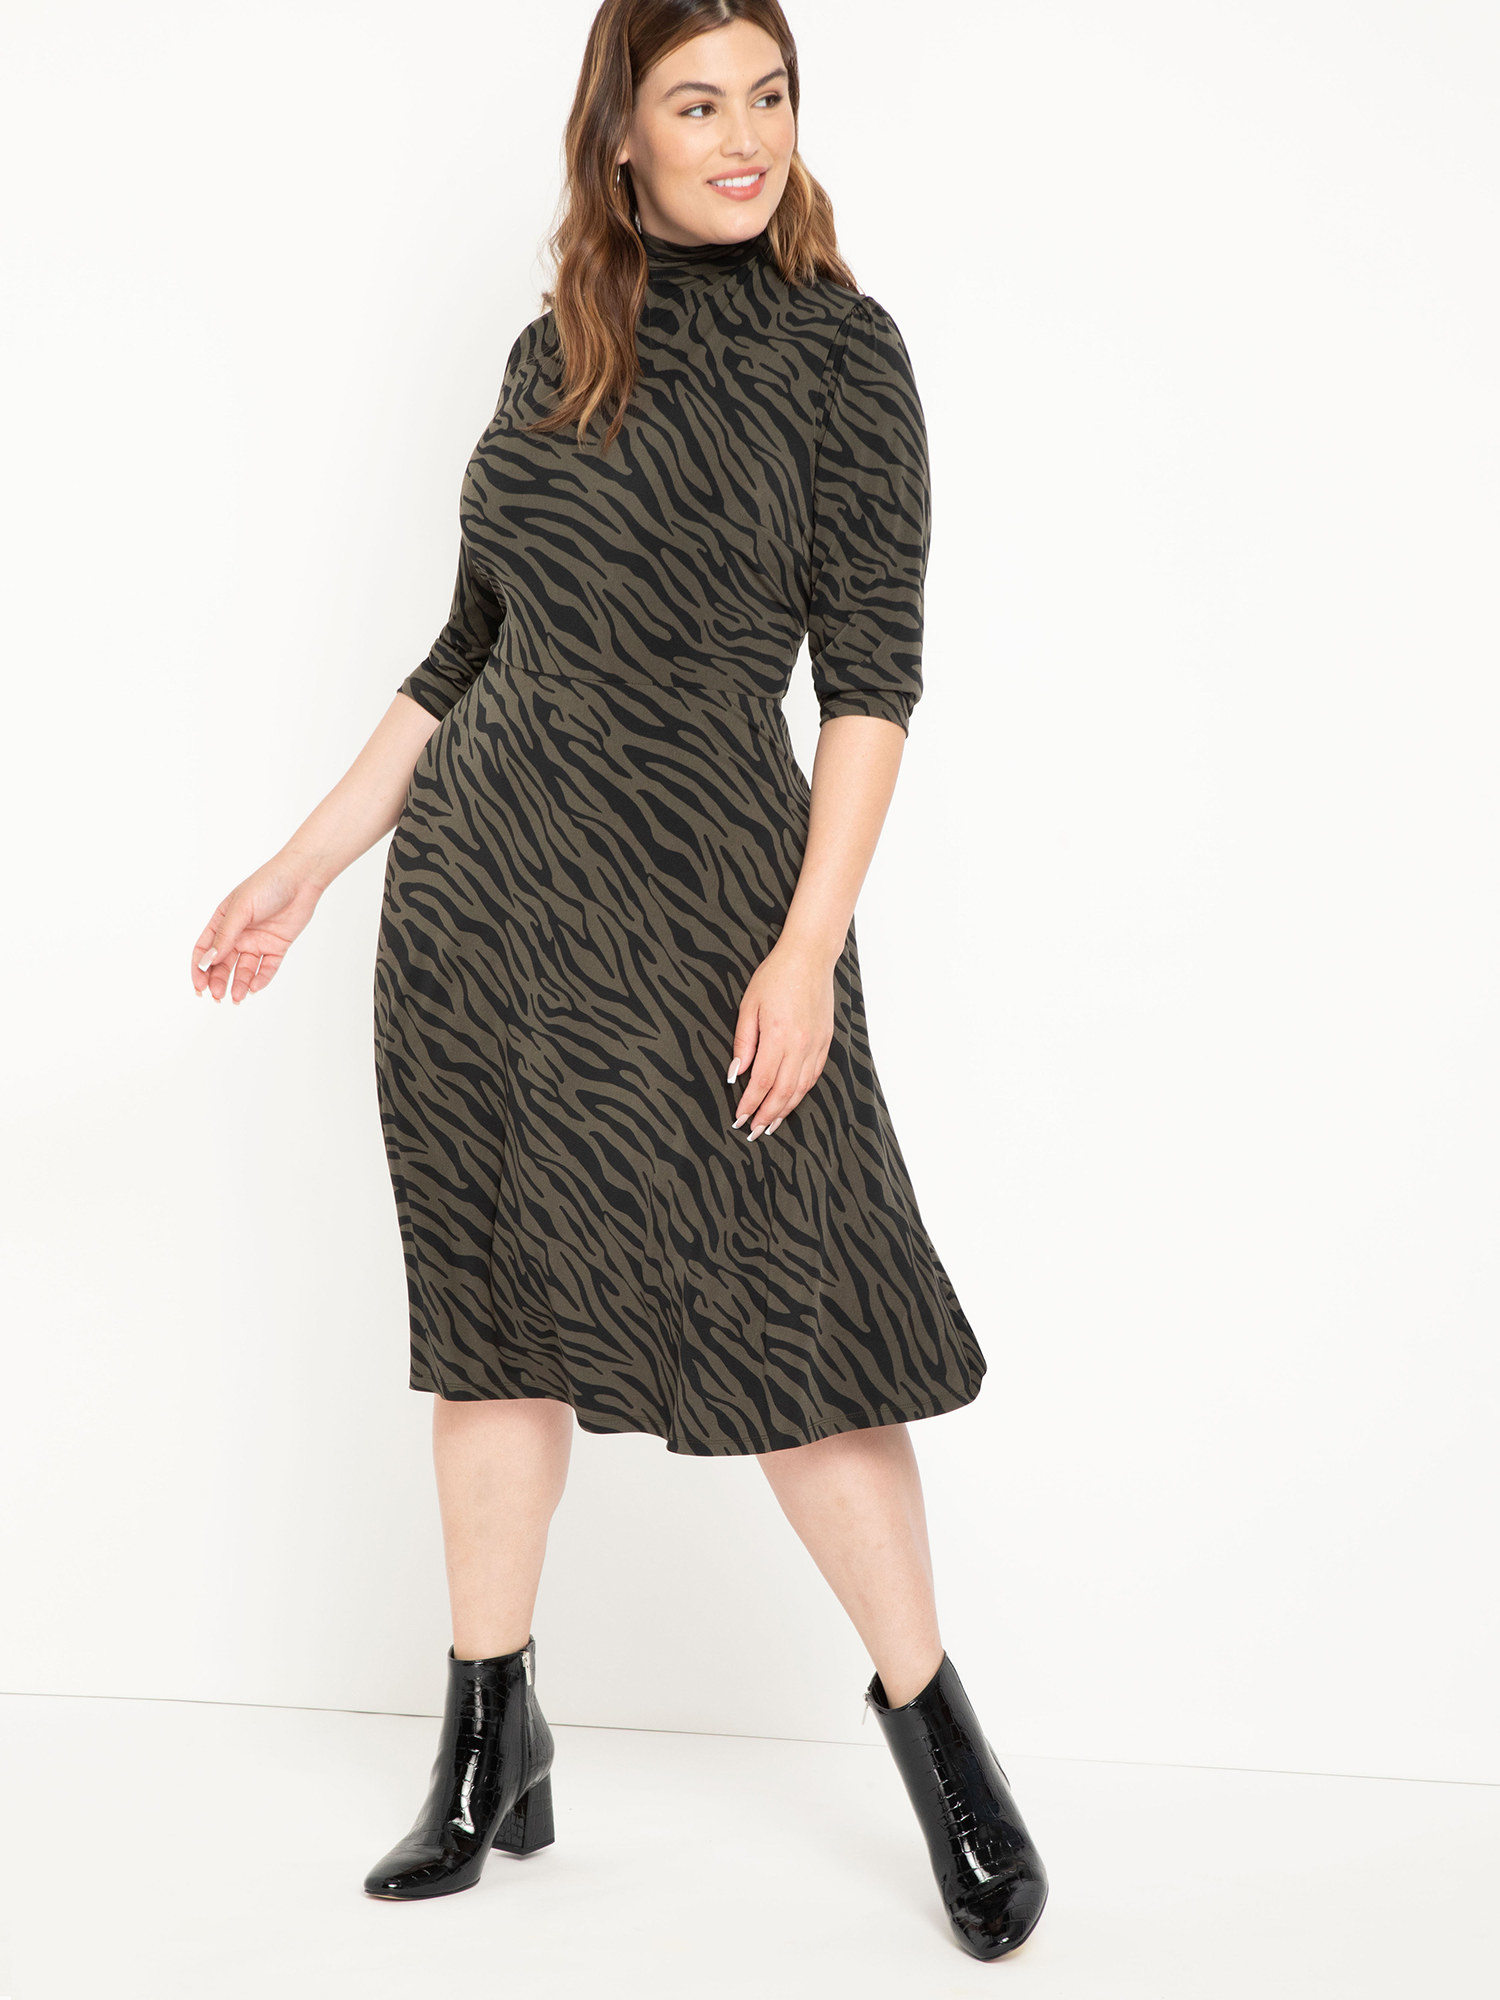 The green and black zebra-print dress